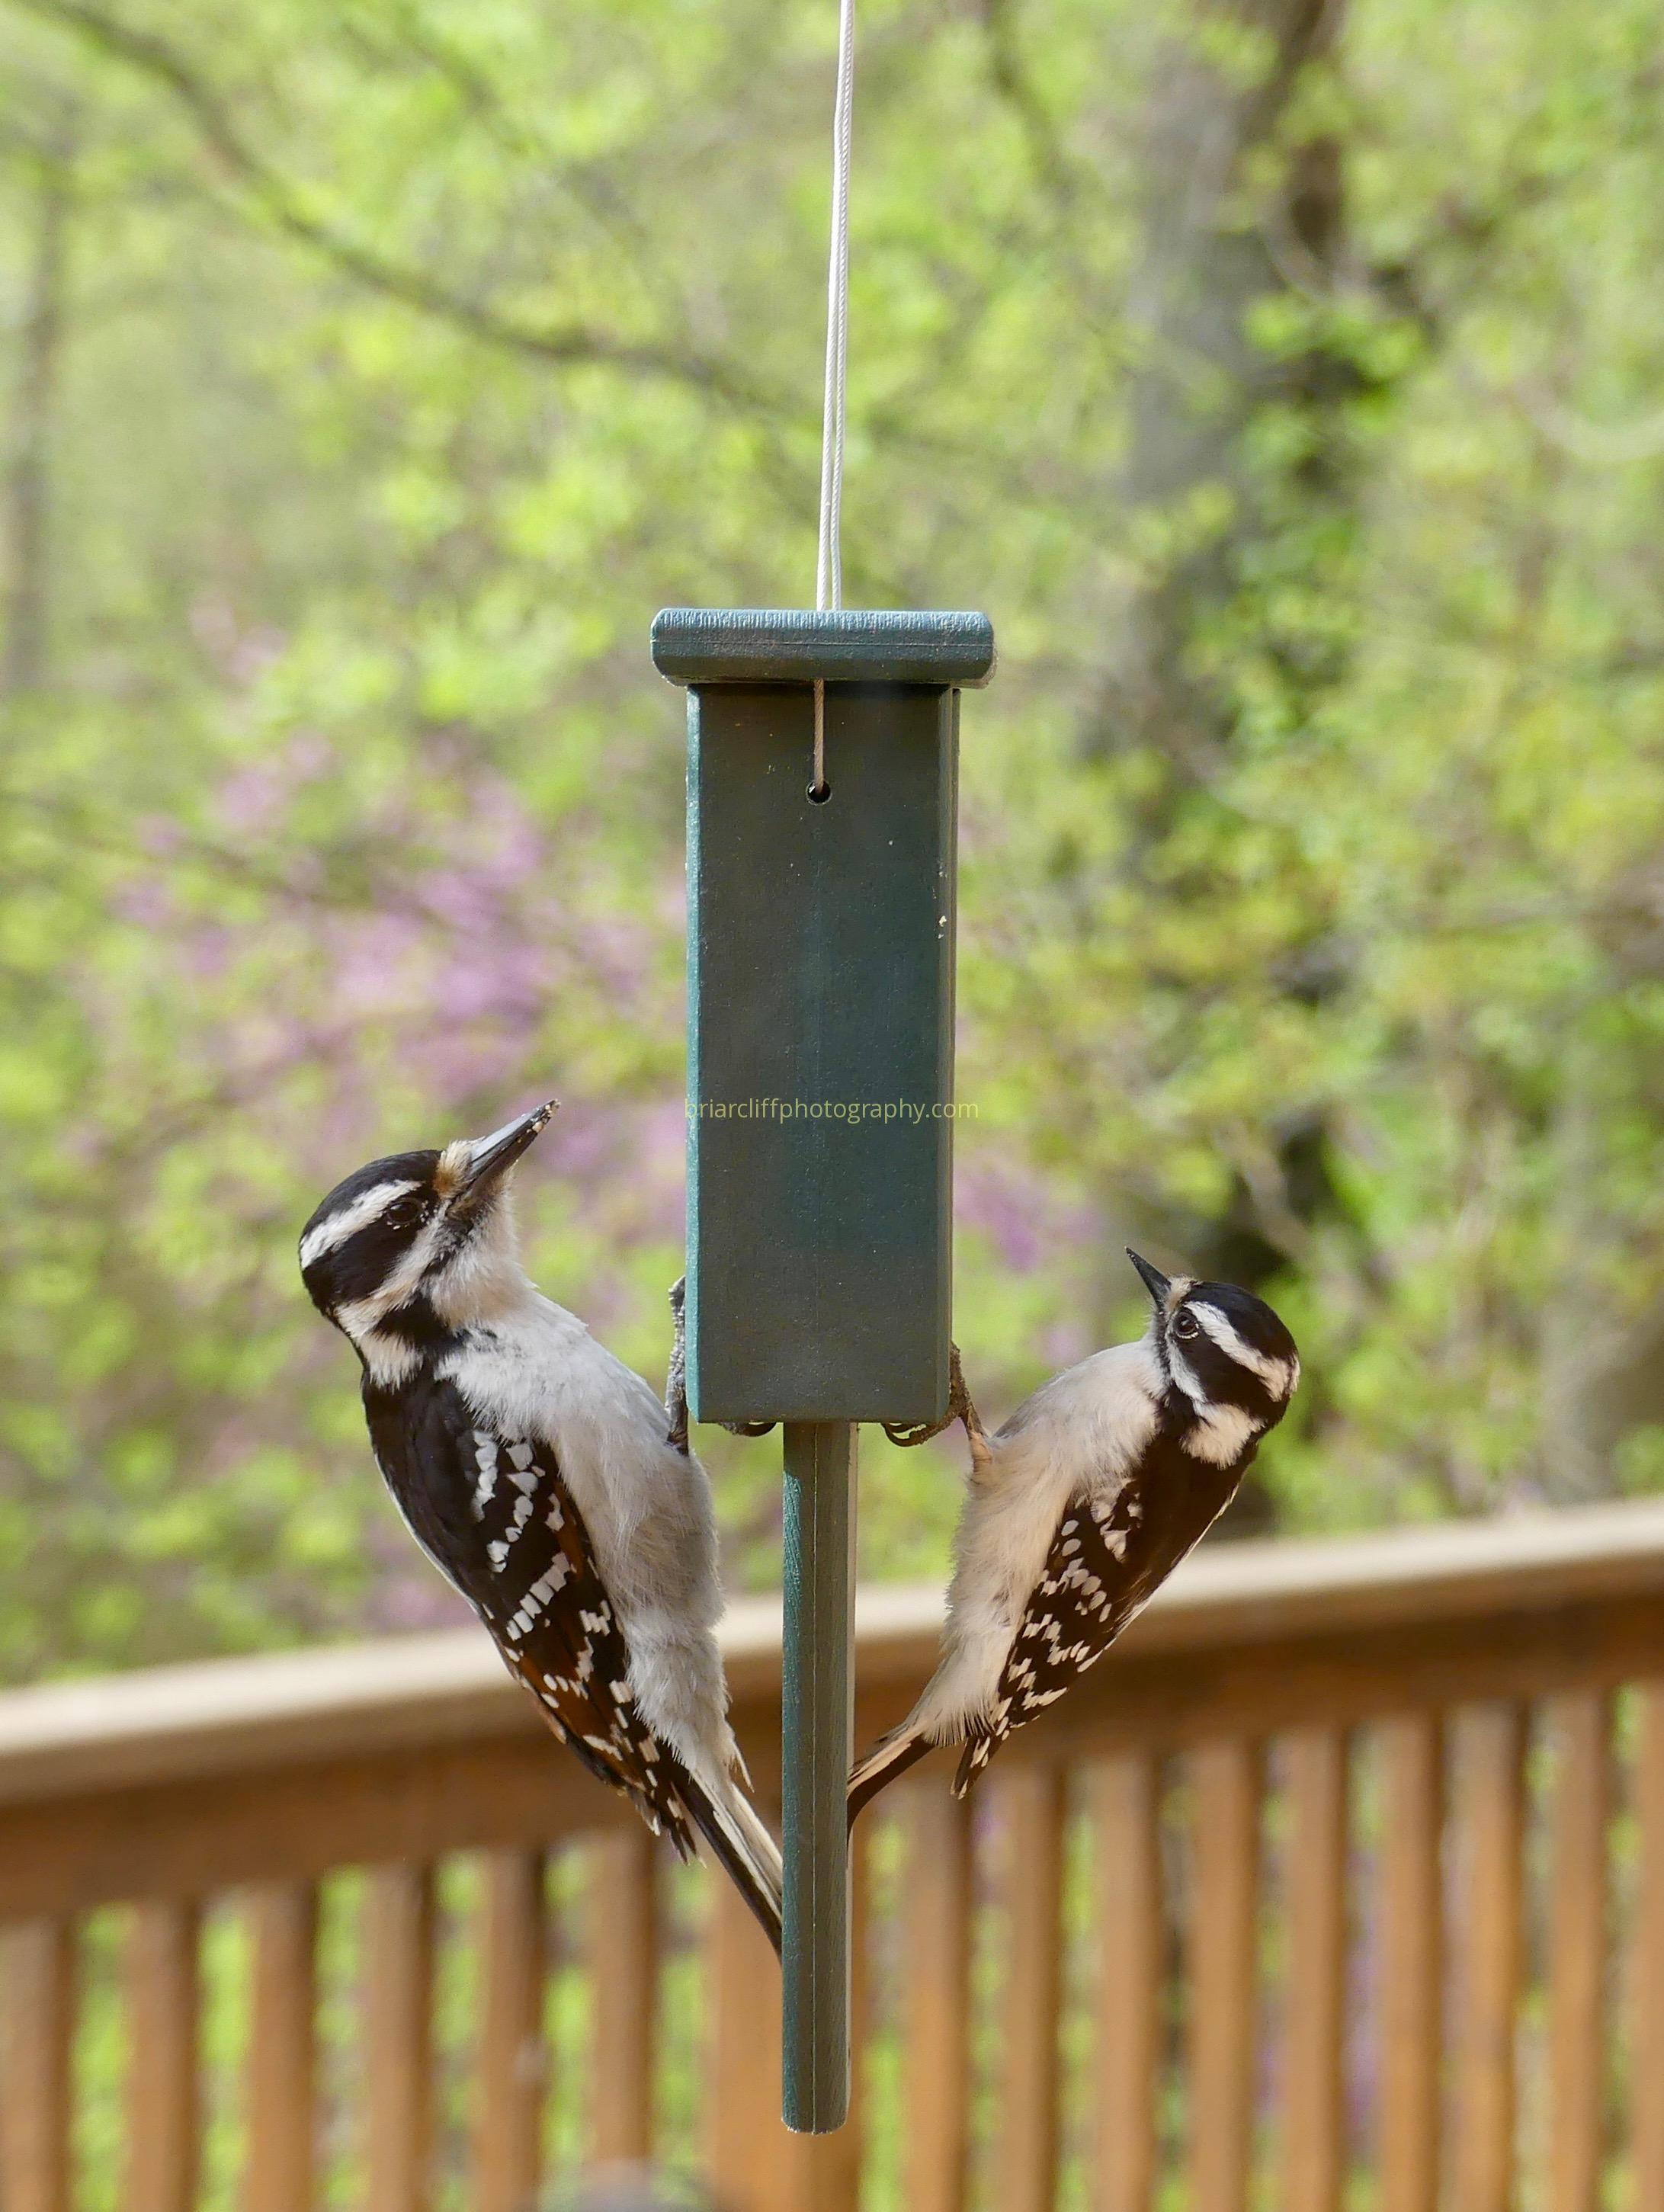 downy woodpecker, hairy woodpecker